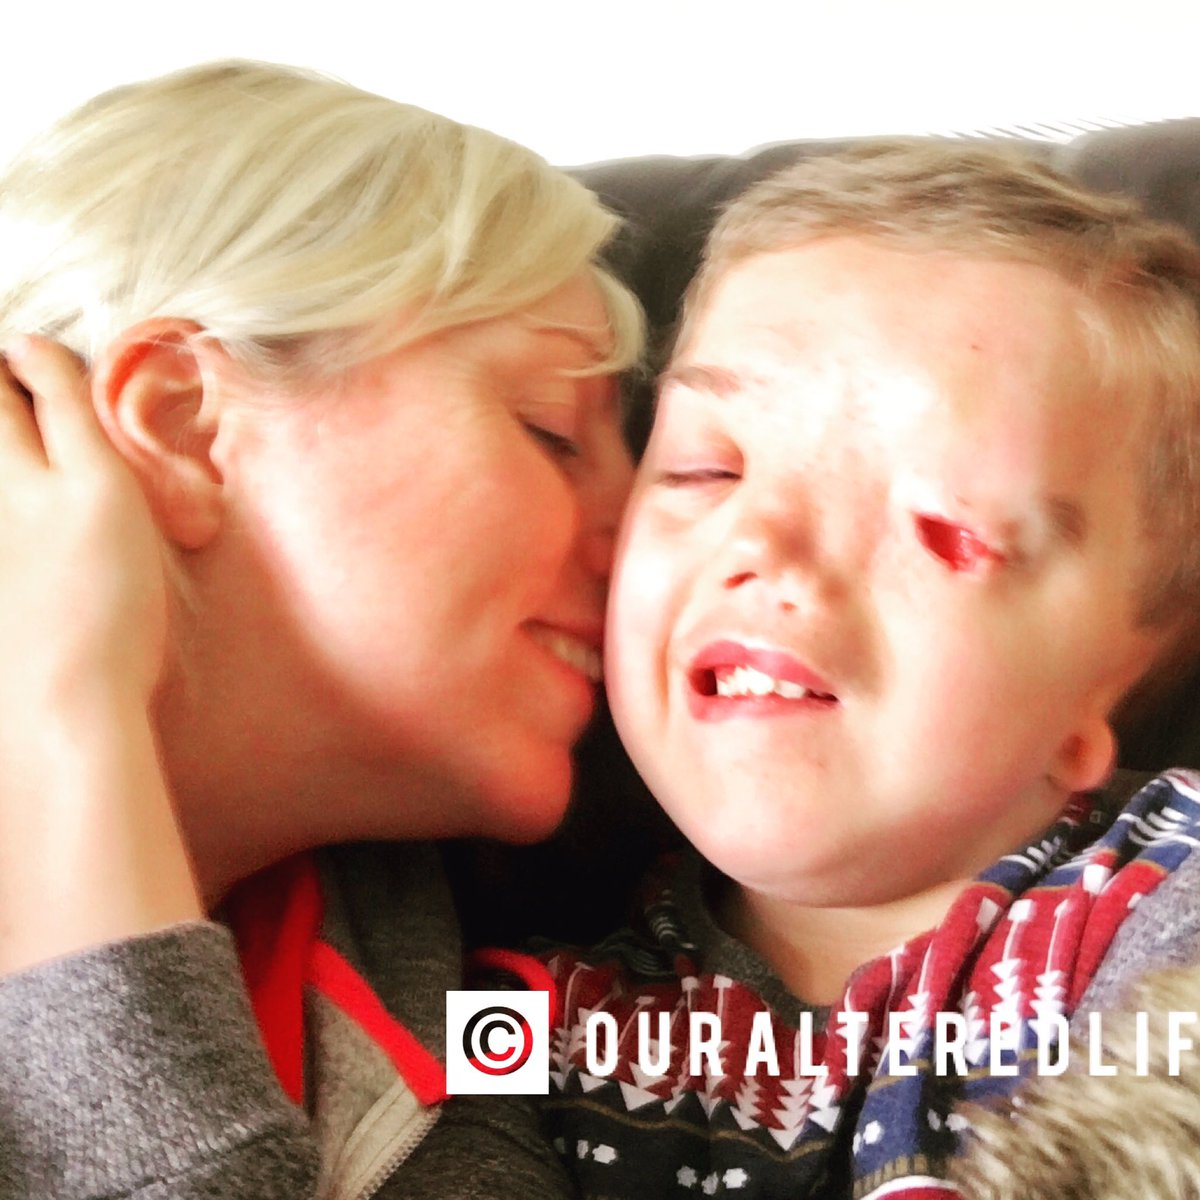 Someone is reporting my son's face & #Instagram agree saying it doesn't meet their guidelines before removing it. RT to support me in this!